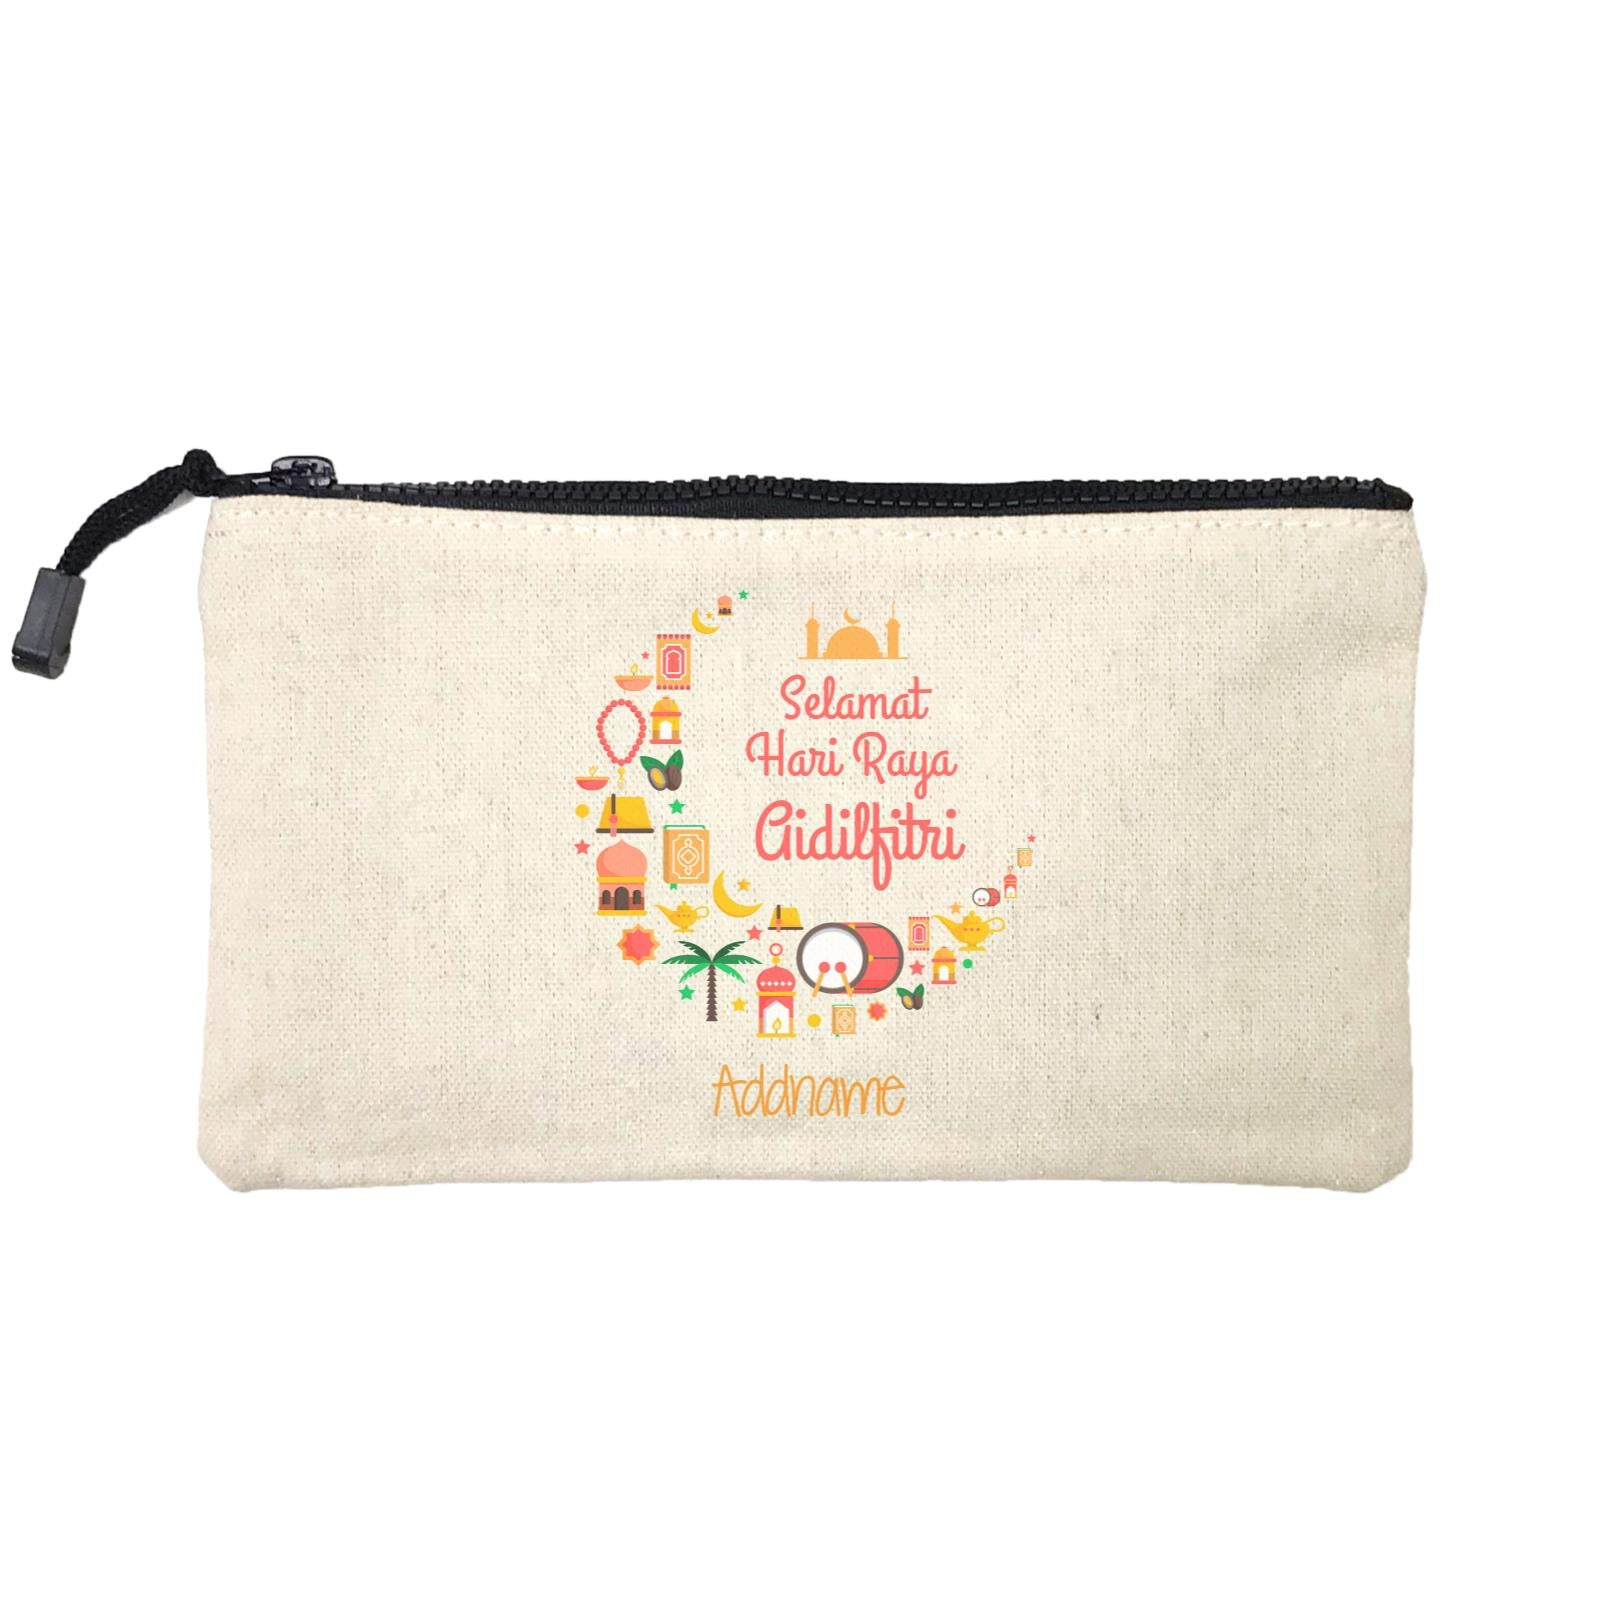 Raya Moon Raya Icons Selamat Hari Aidilfitri Addname Mini Accessories Stationery Pouch